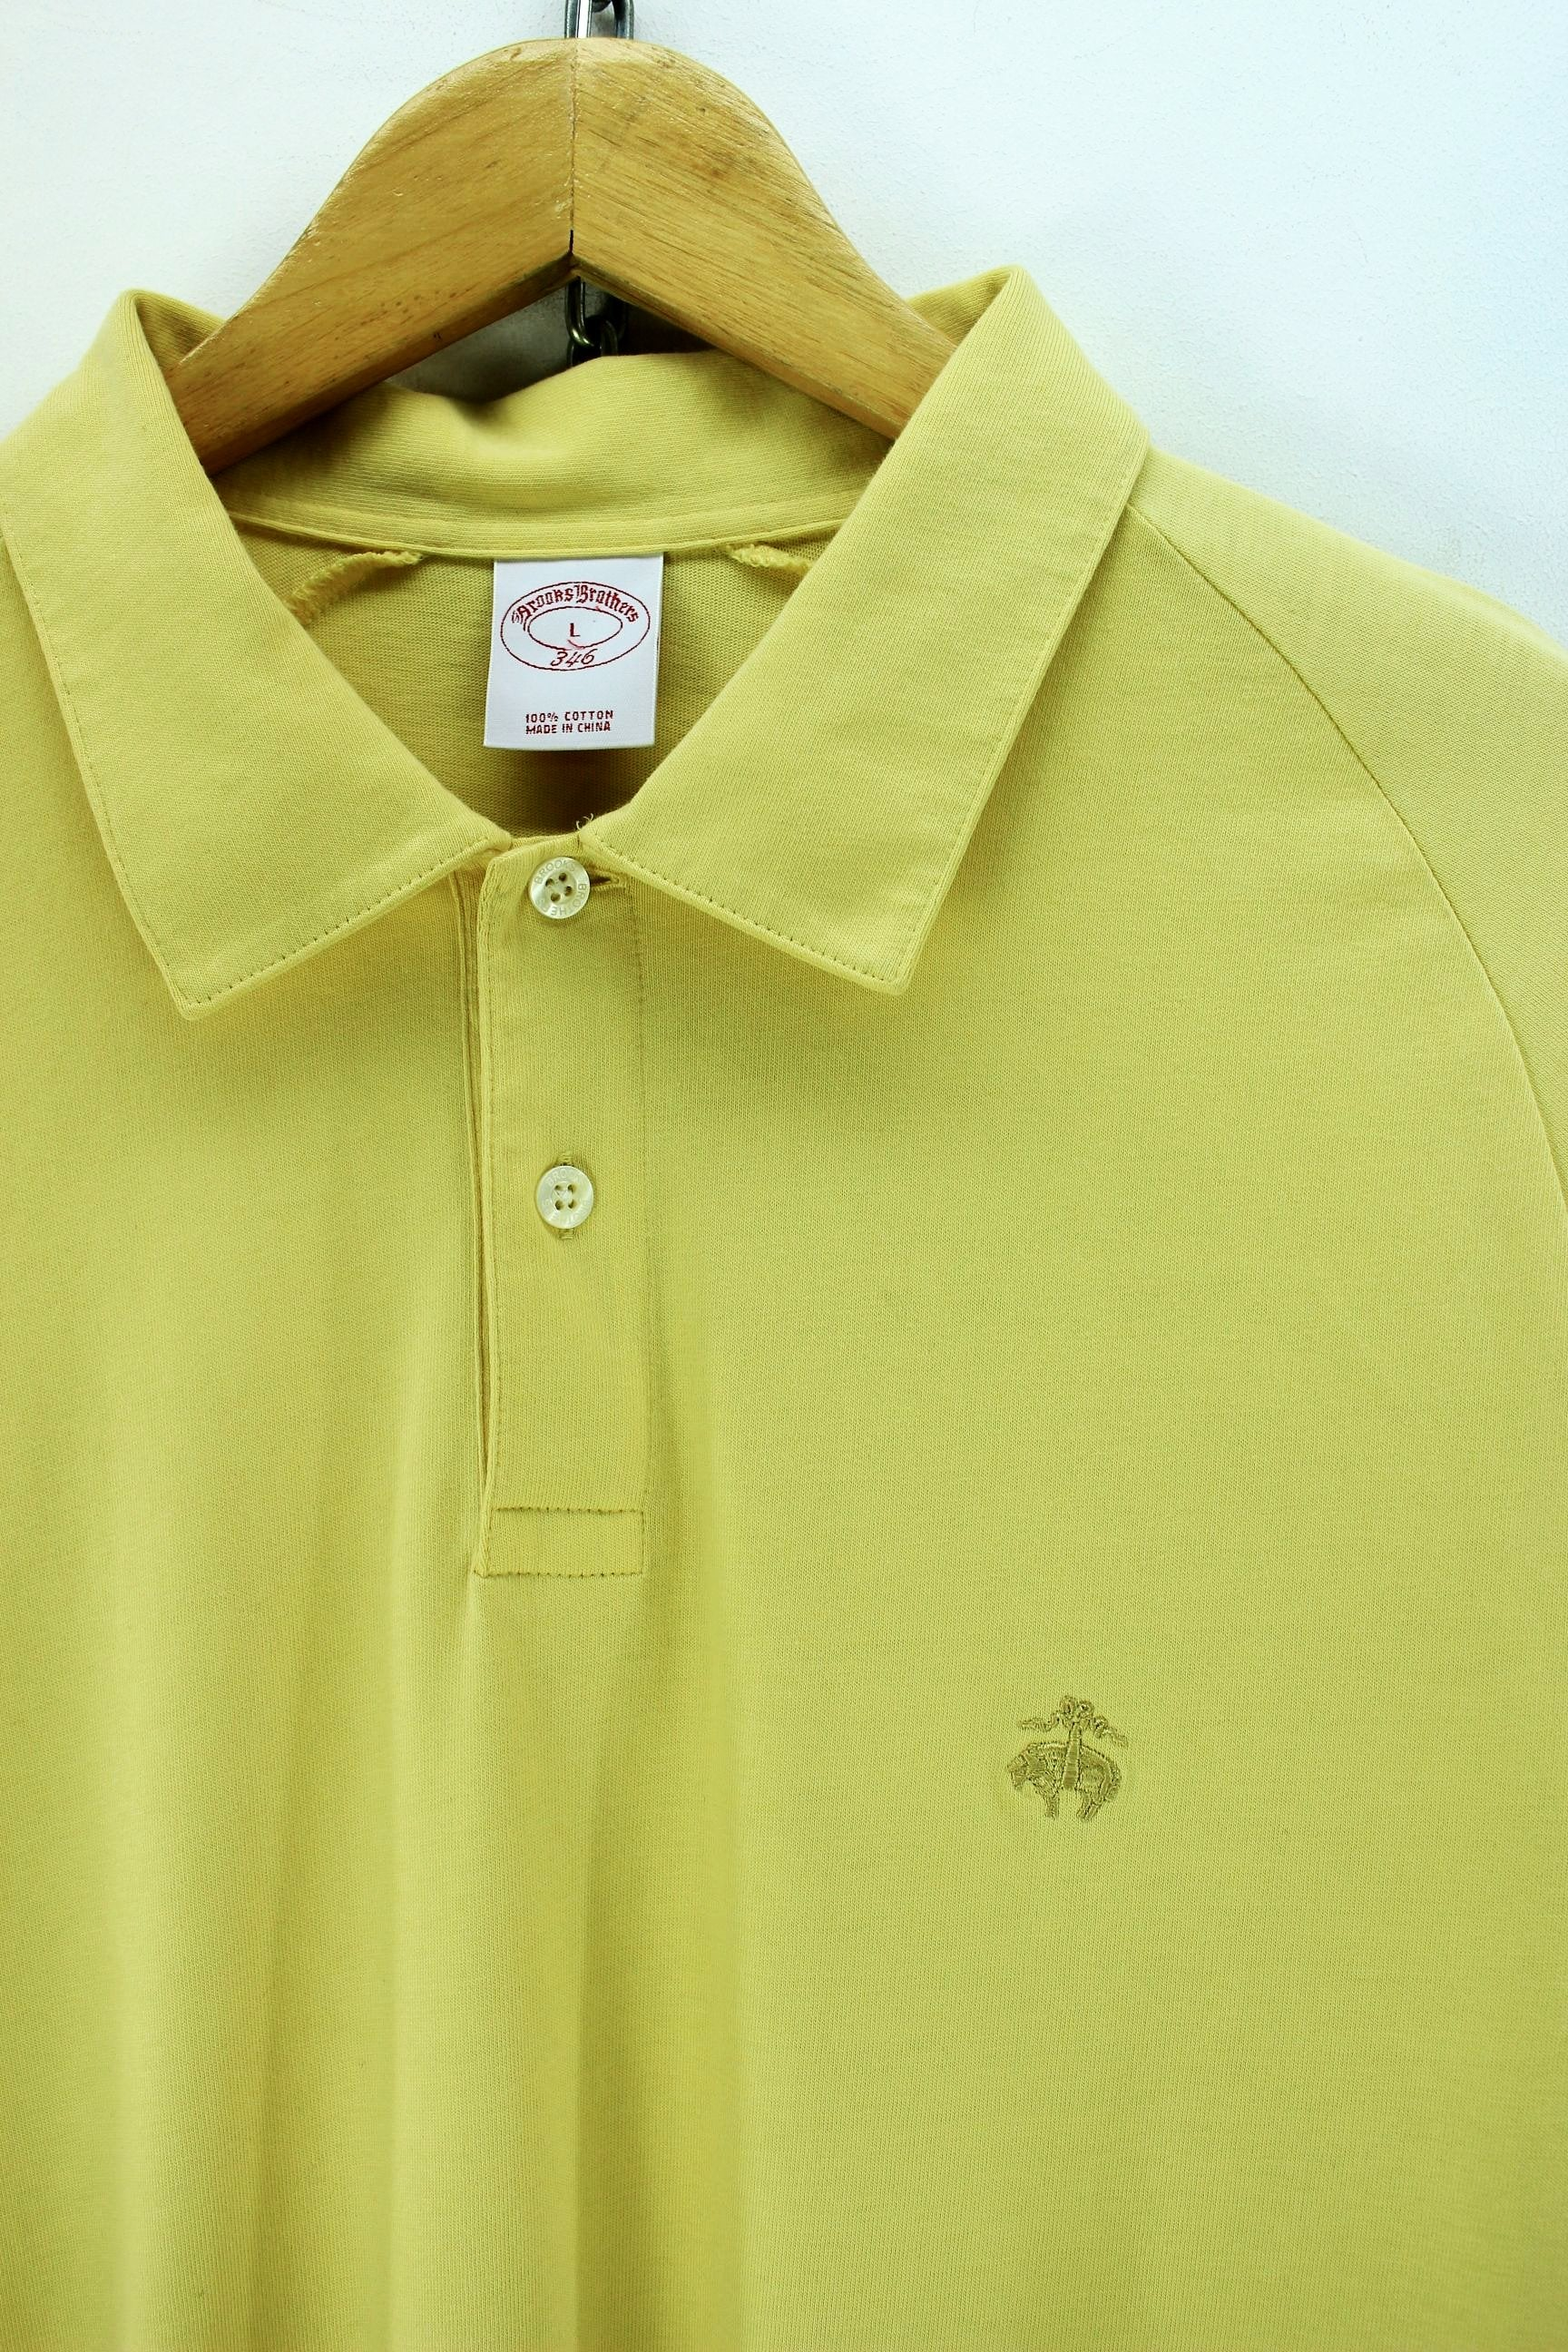 Brooks Brothers Men s Polo Shirt Size L Yellow Long Sleeve Cotton Casual -  Top-Garms c04ef557e